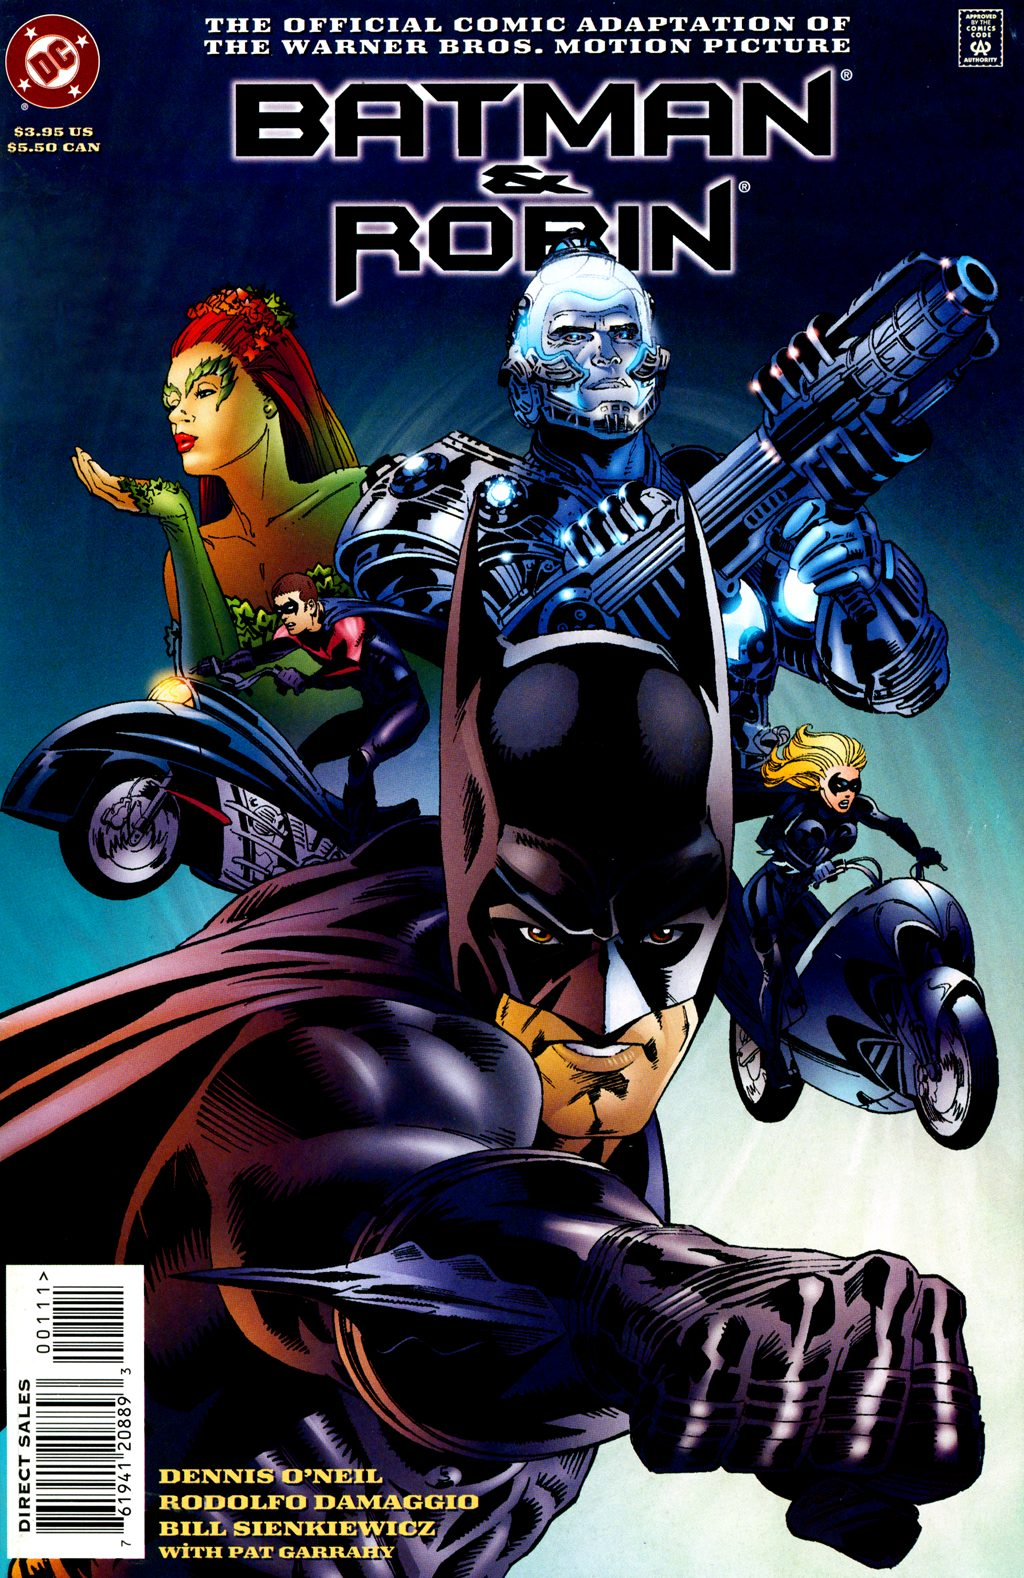 http://img2.wikia.nocookie.net/__cb20110724183911/batman/images/a/ae/Batman_%26_Robin_Comic_Book_Cover_2.jpg